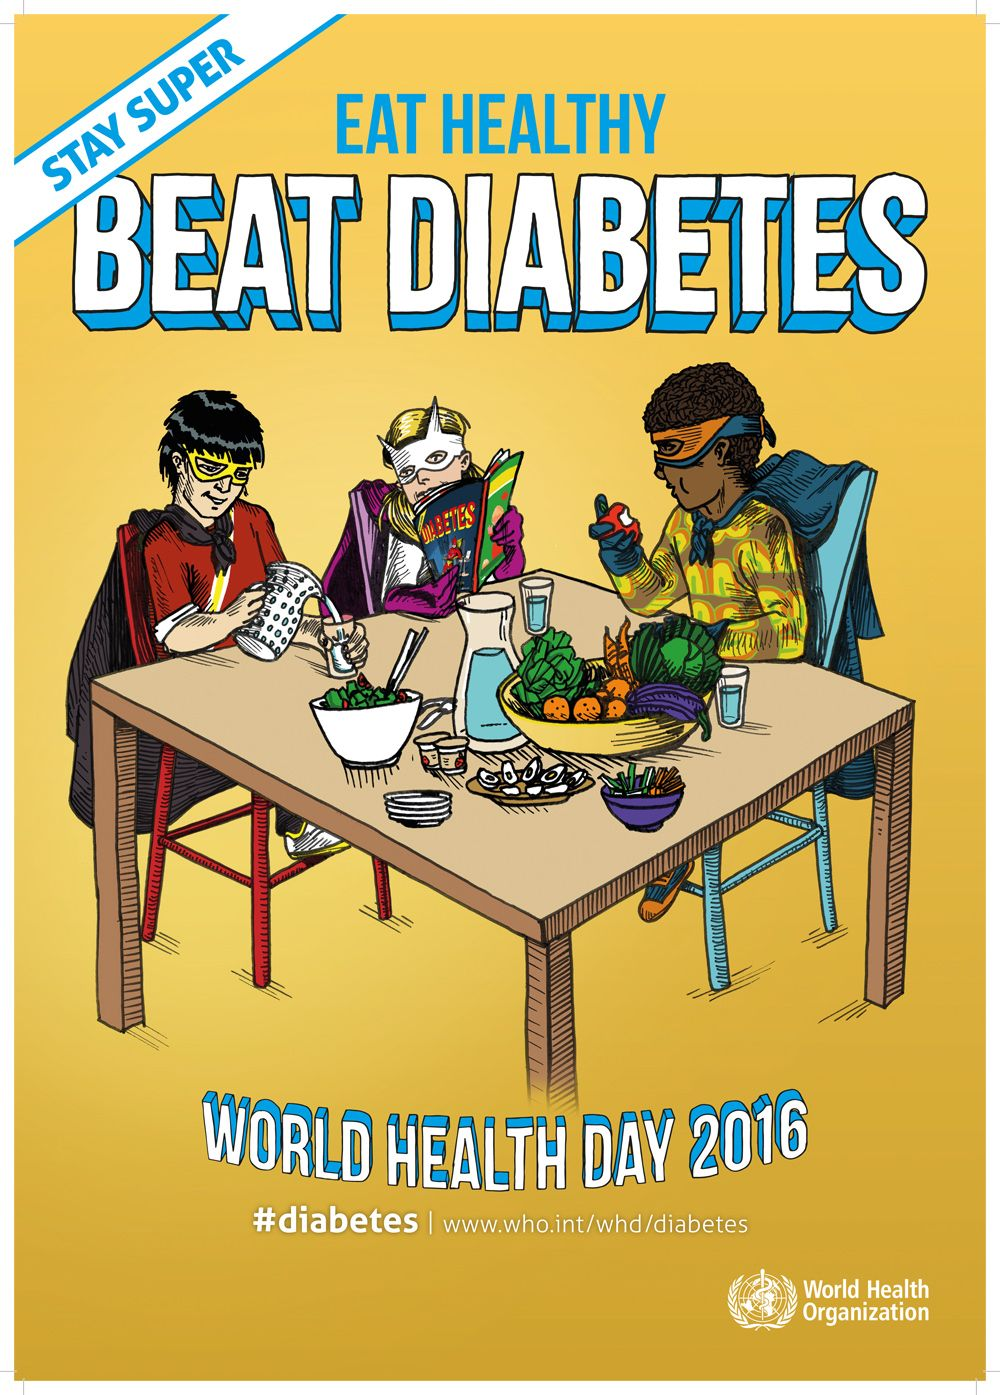 World Heath Day 2016 Diabetes Healthstandards Who